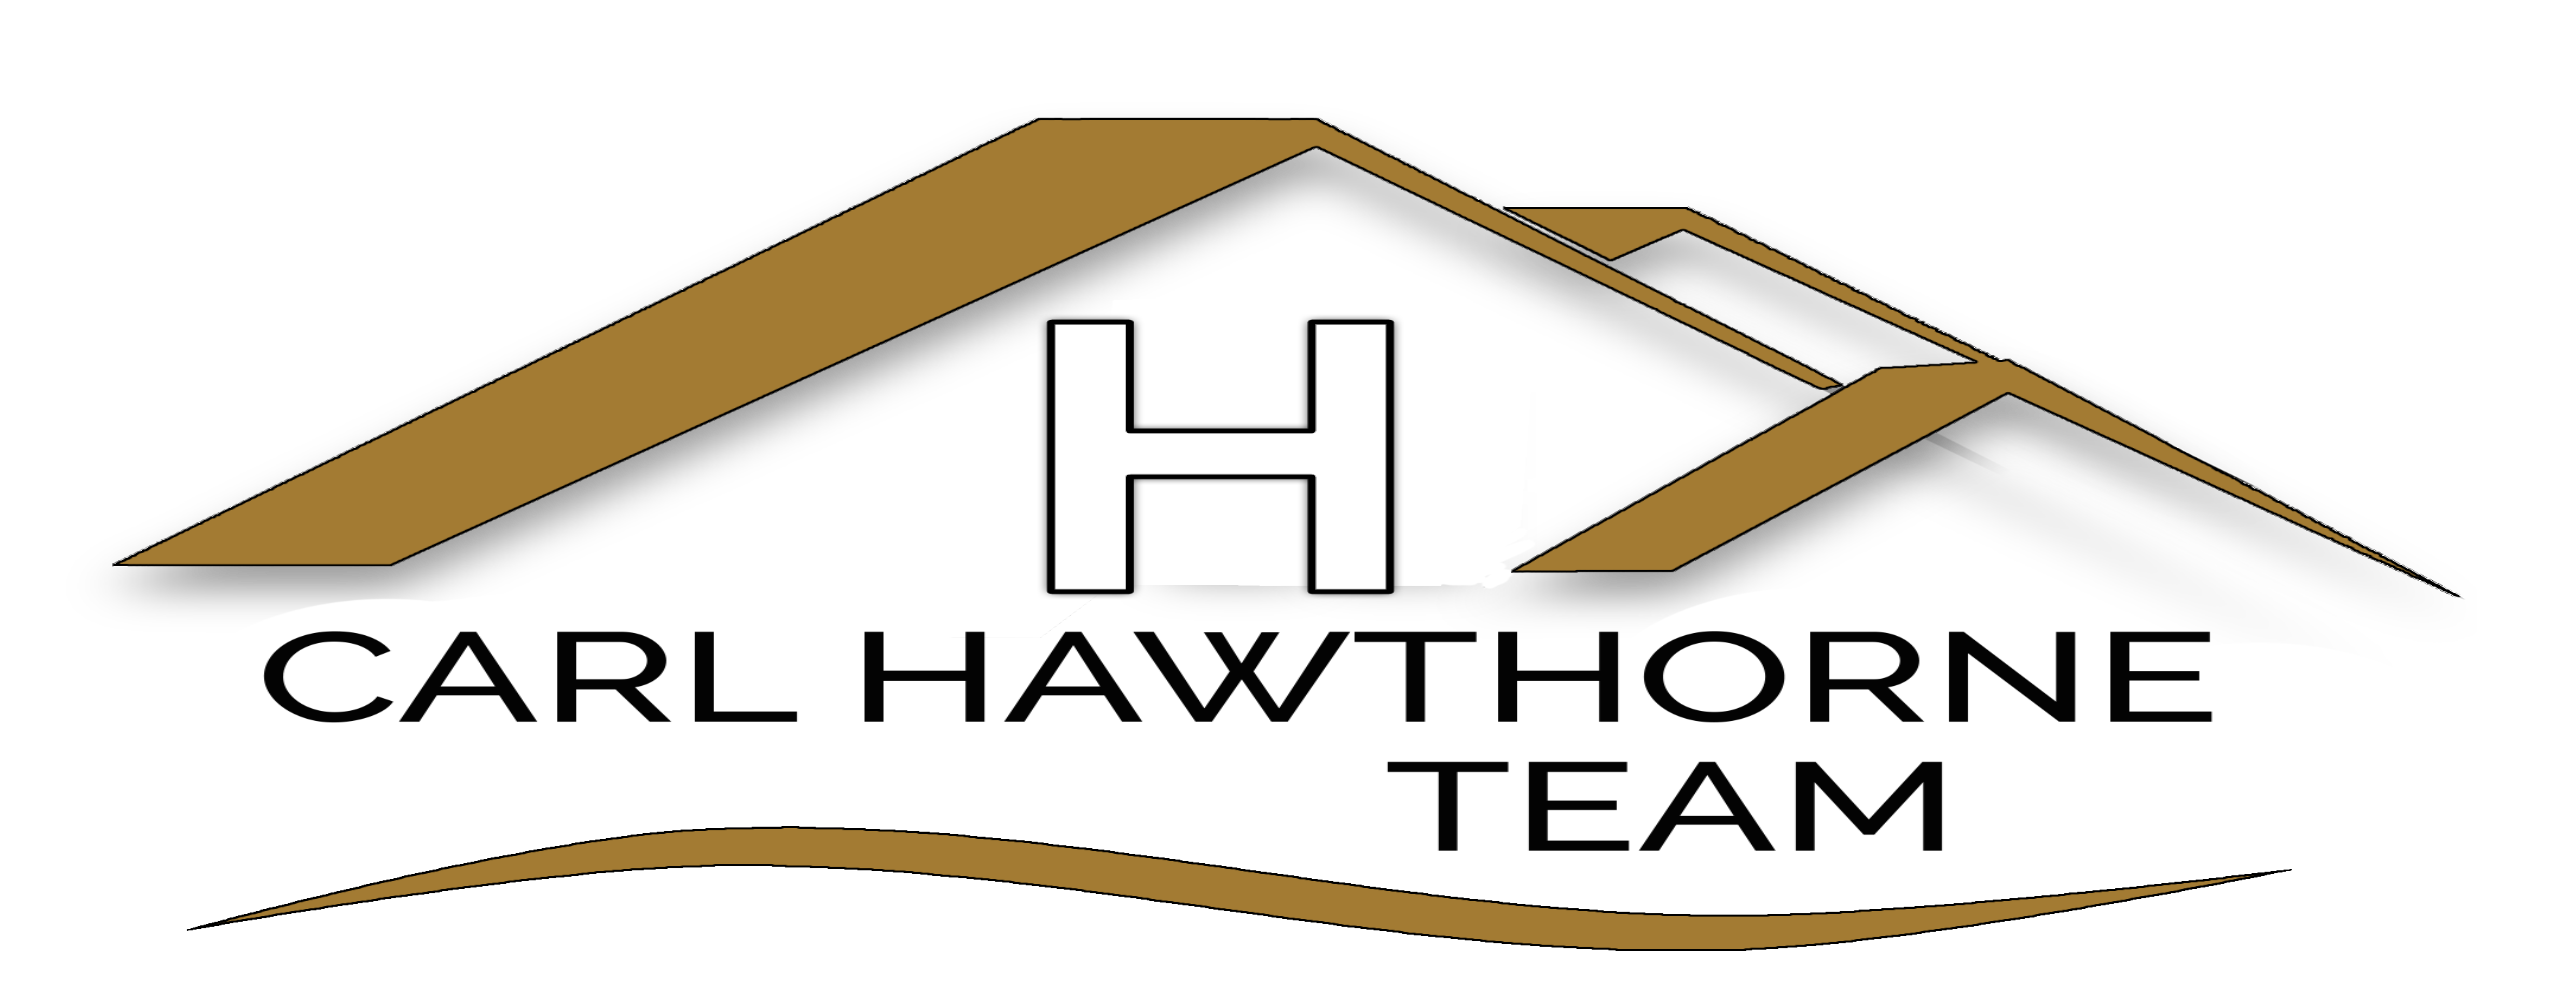 The Carl Hawthorne Team logo